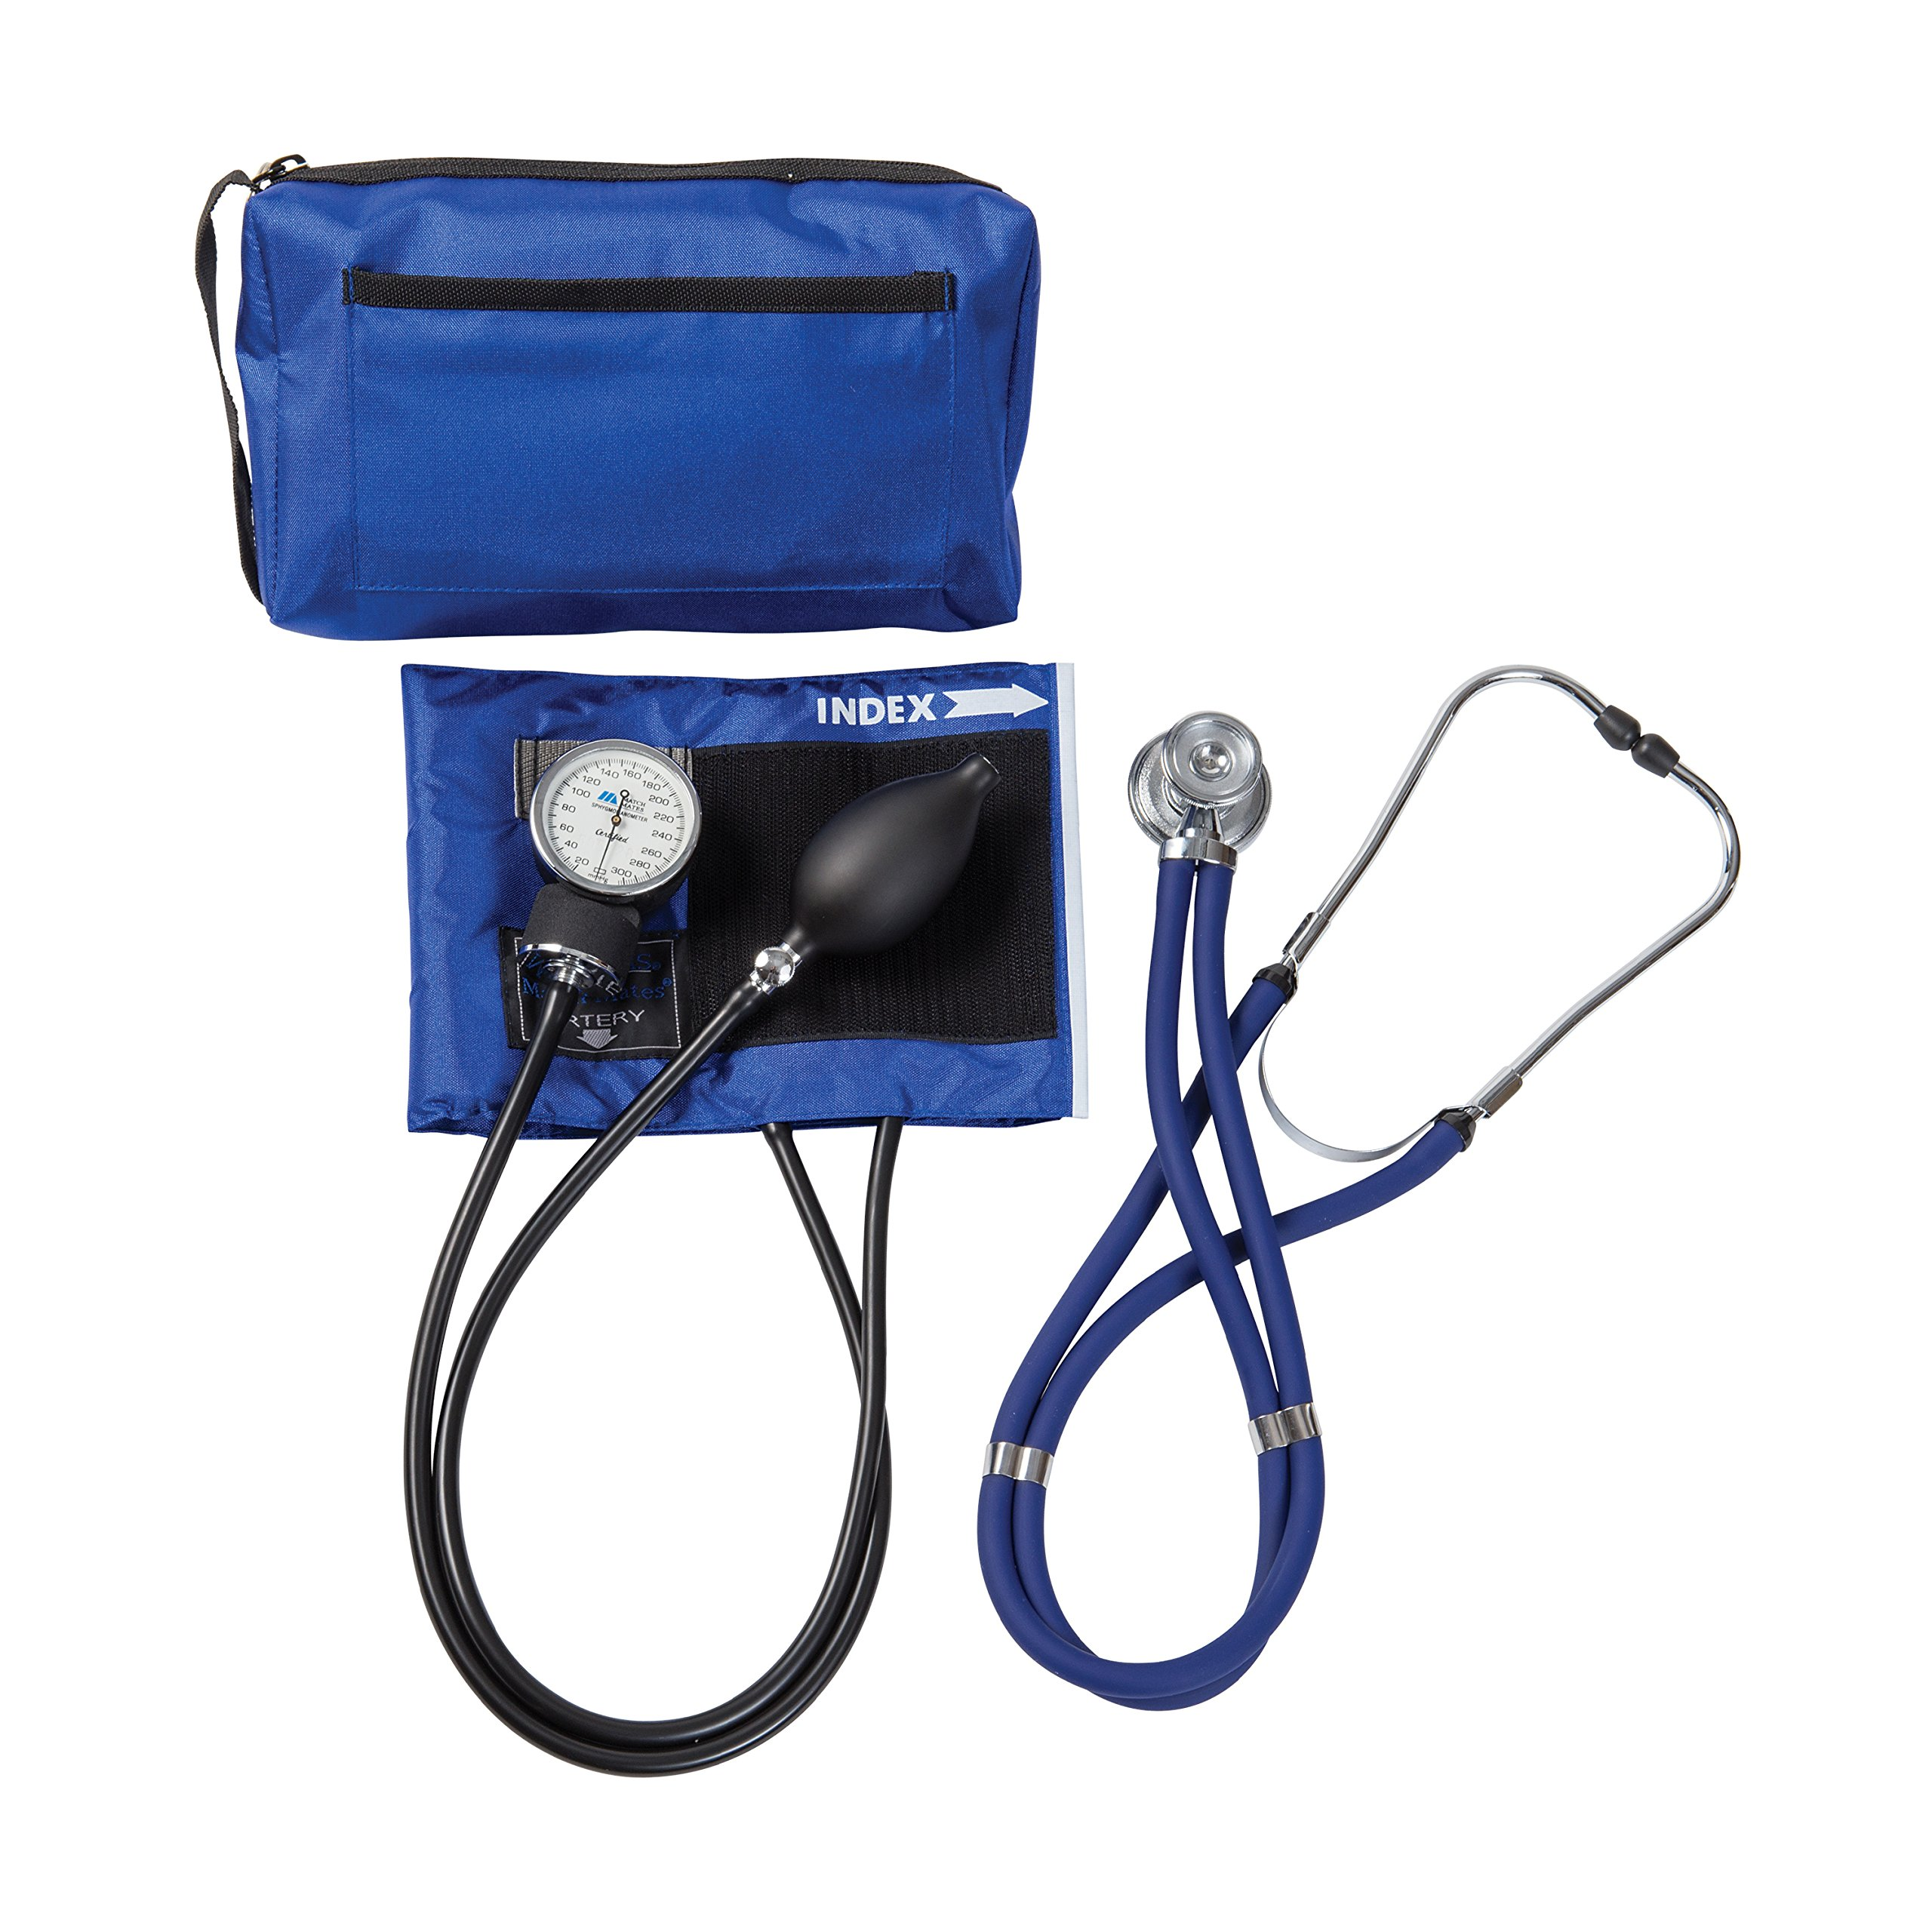 MABIS MatchMates Aneroid Sphygmomanometer and Sprague Rappaport Stethoscope Combination Manual Blood Pressure Kit with Calibrated Nylon Cuff, Professional Quality, Carrying Case, Royal Blue